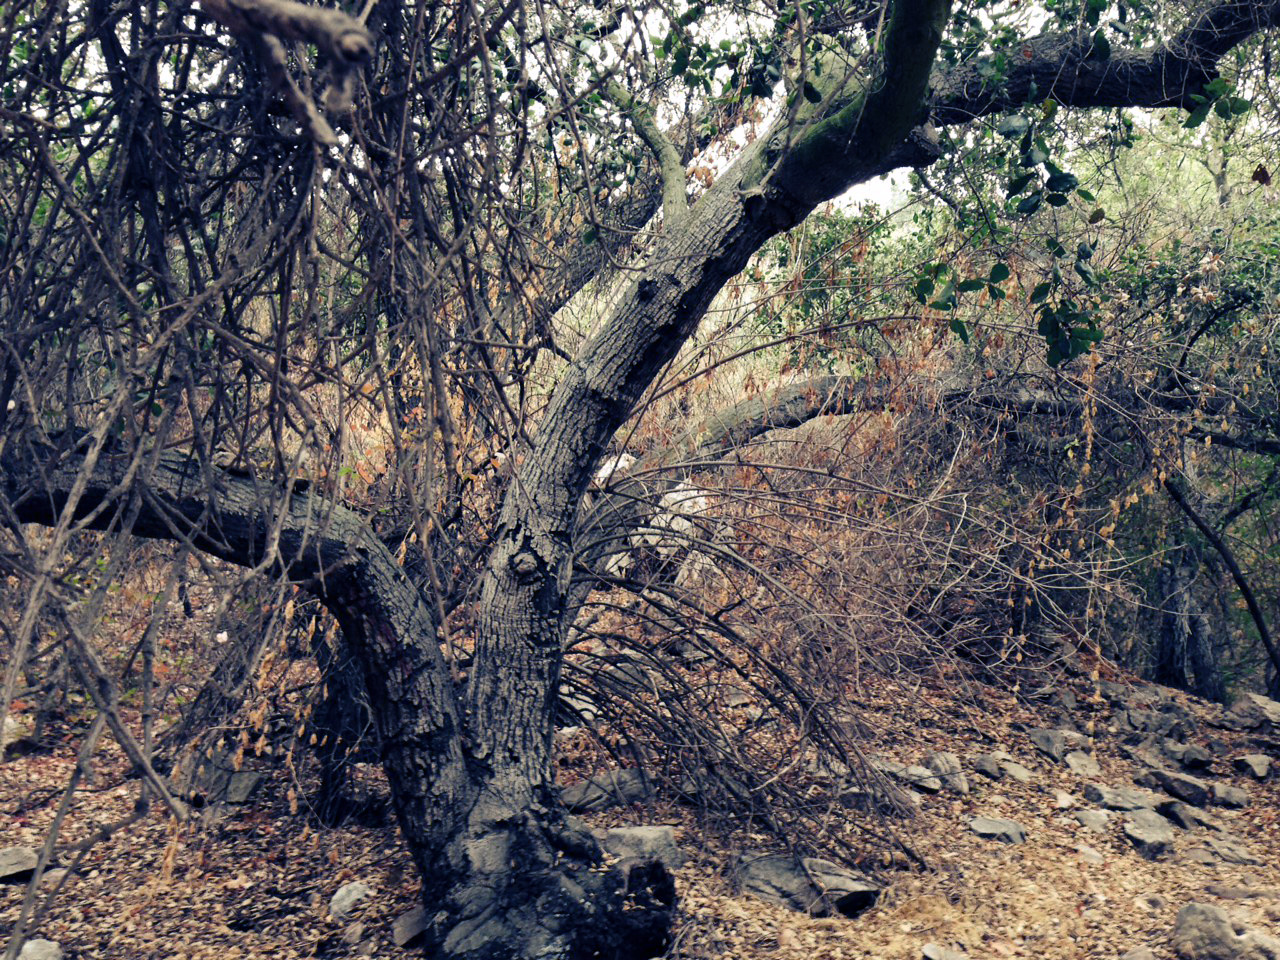 A large and straggly tree.